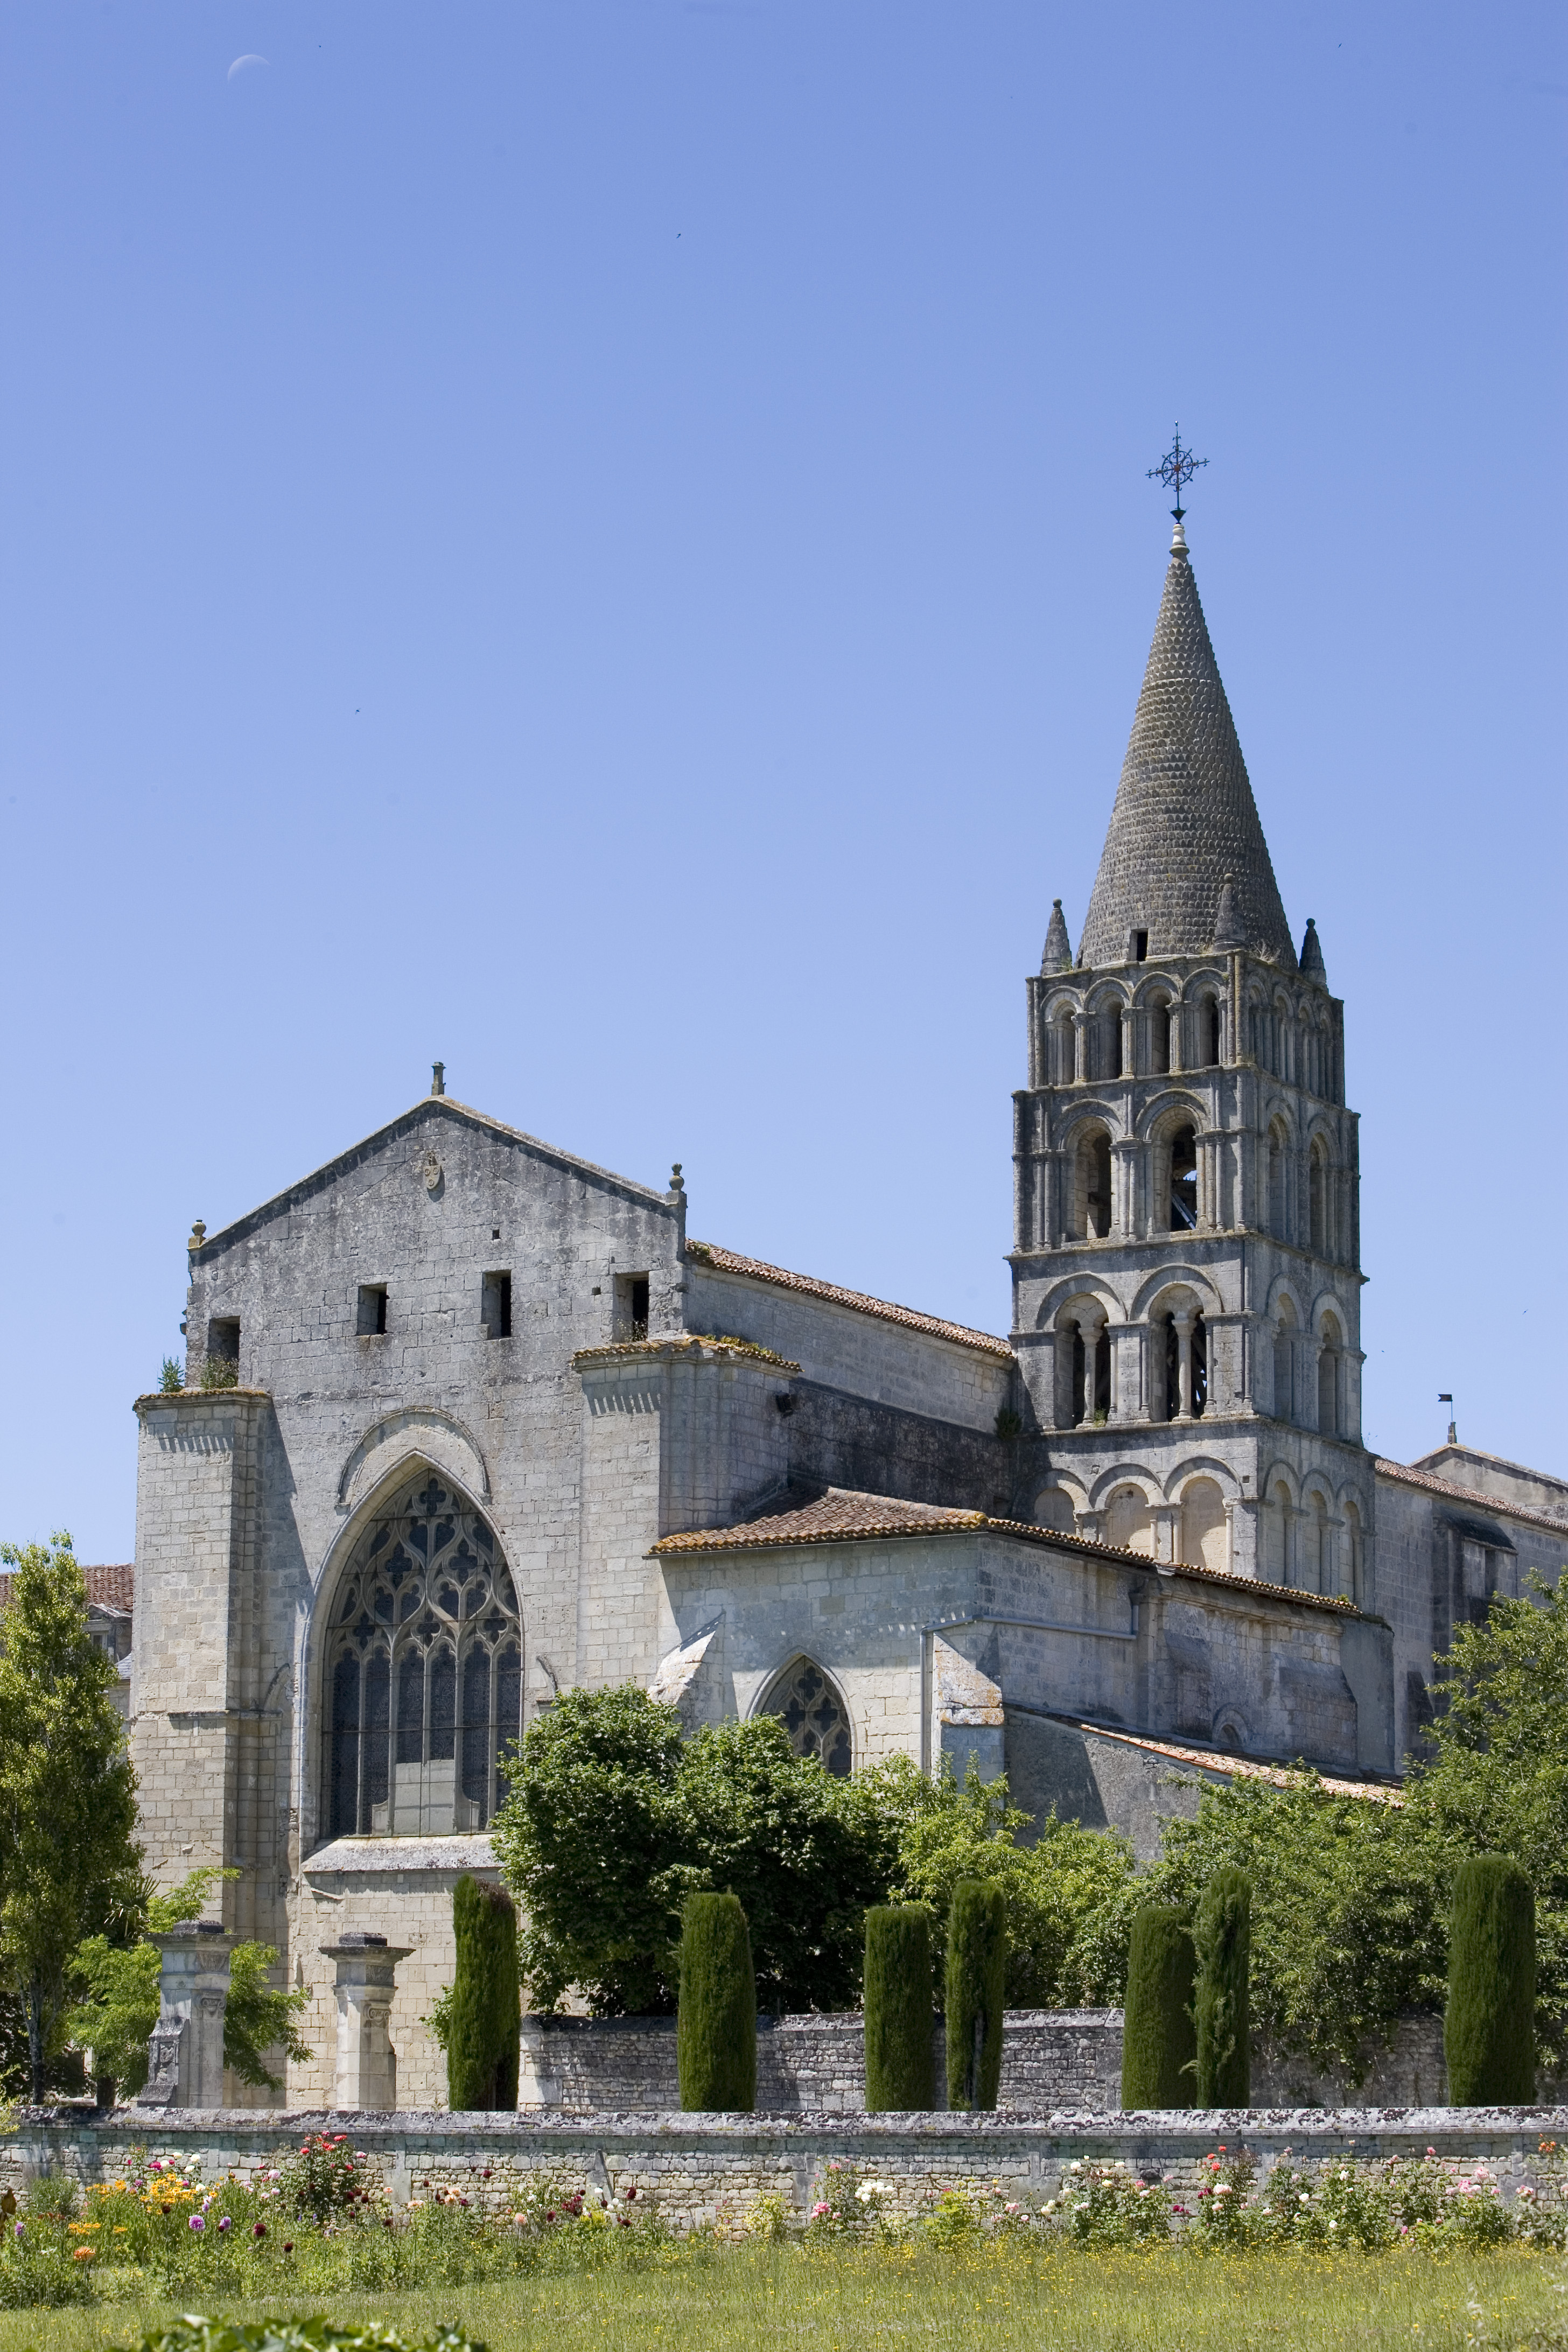 abbaye bassac charente croisiere inter croisieres sireuil nicols.jpg